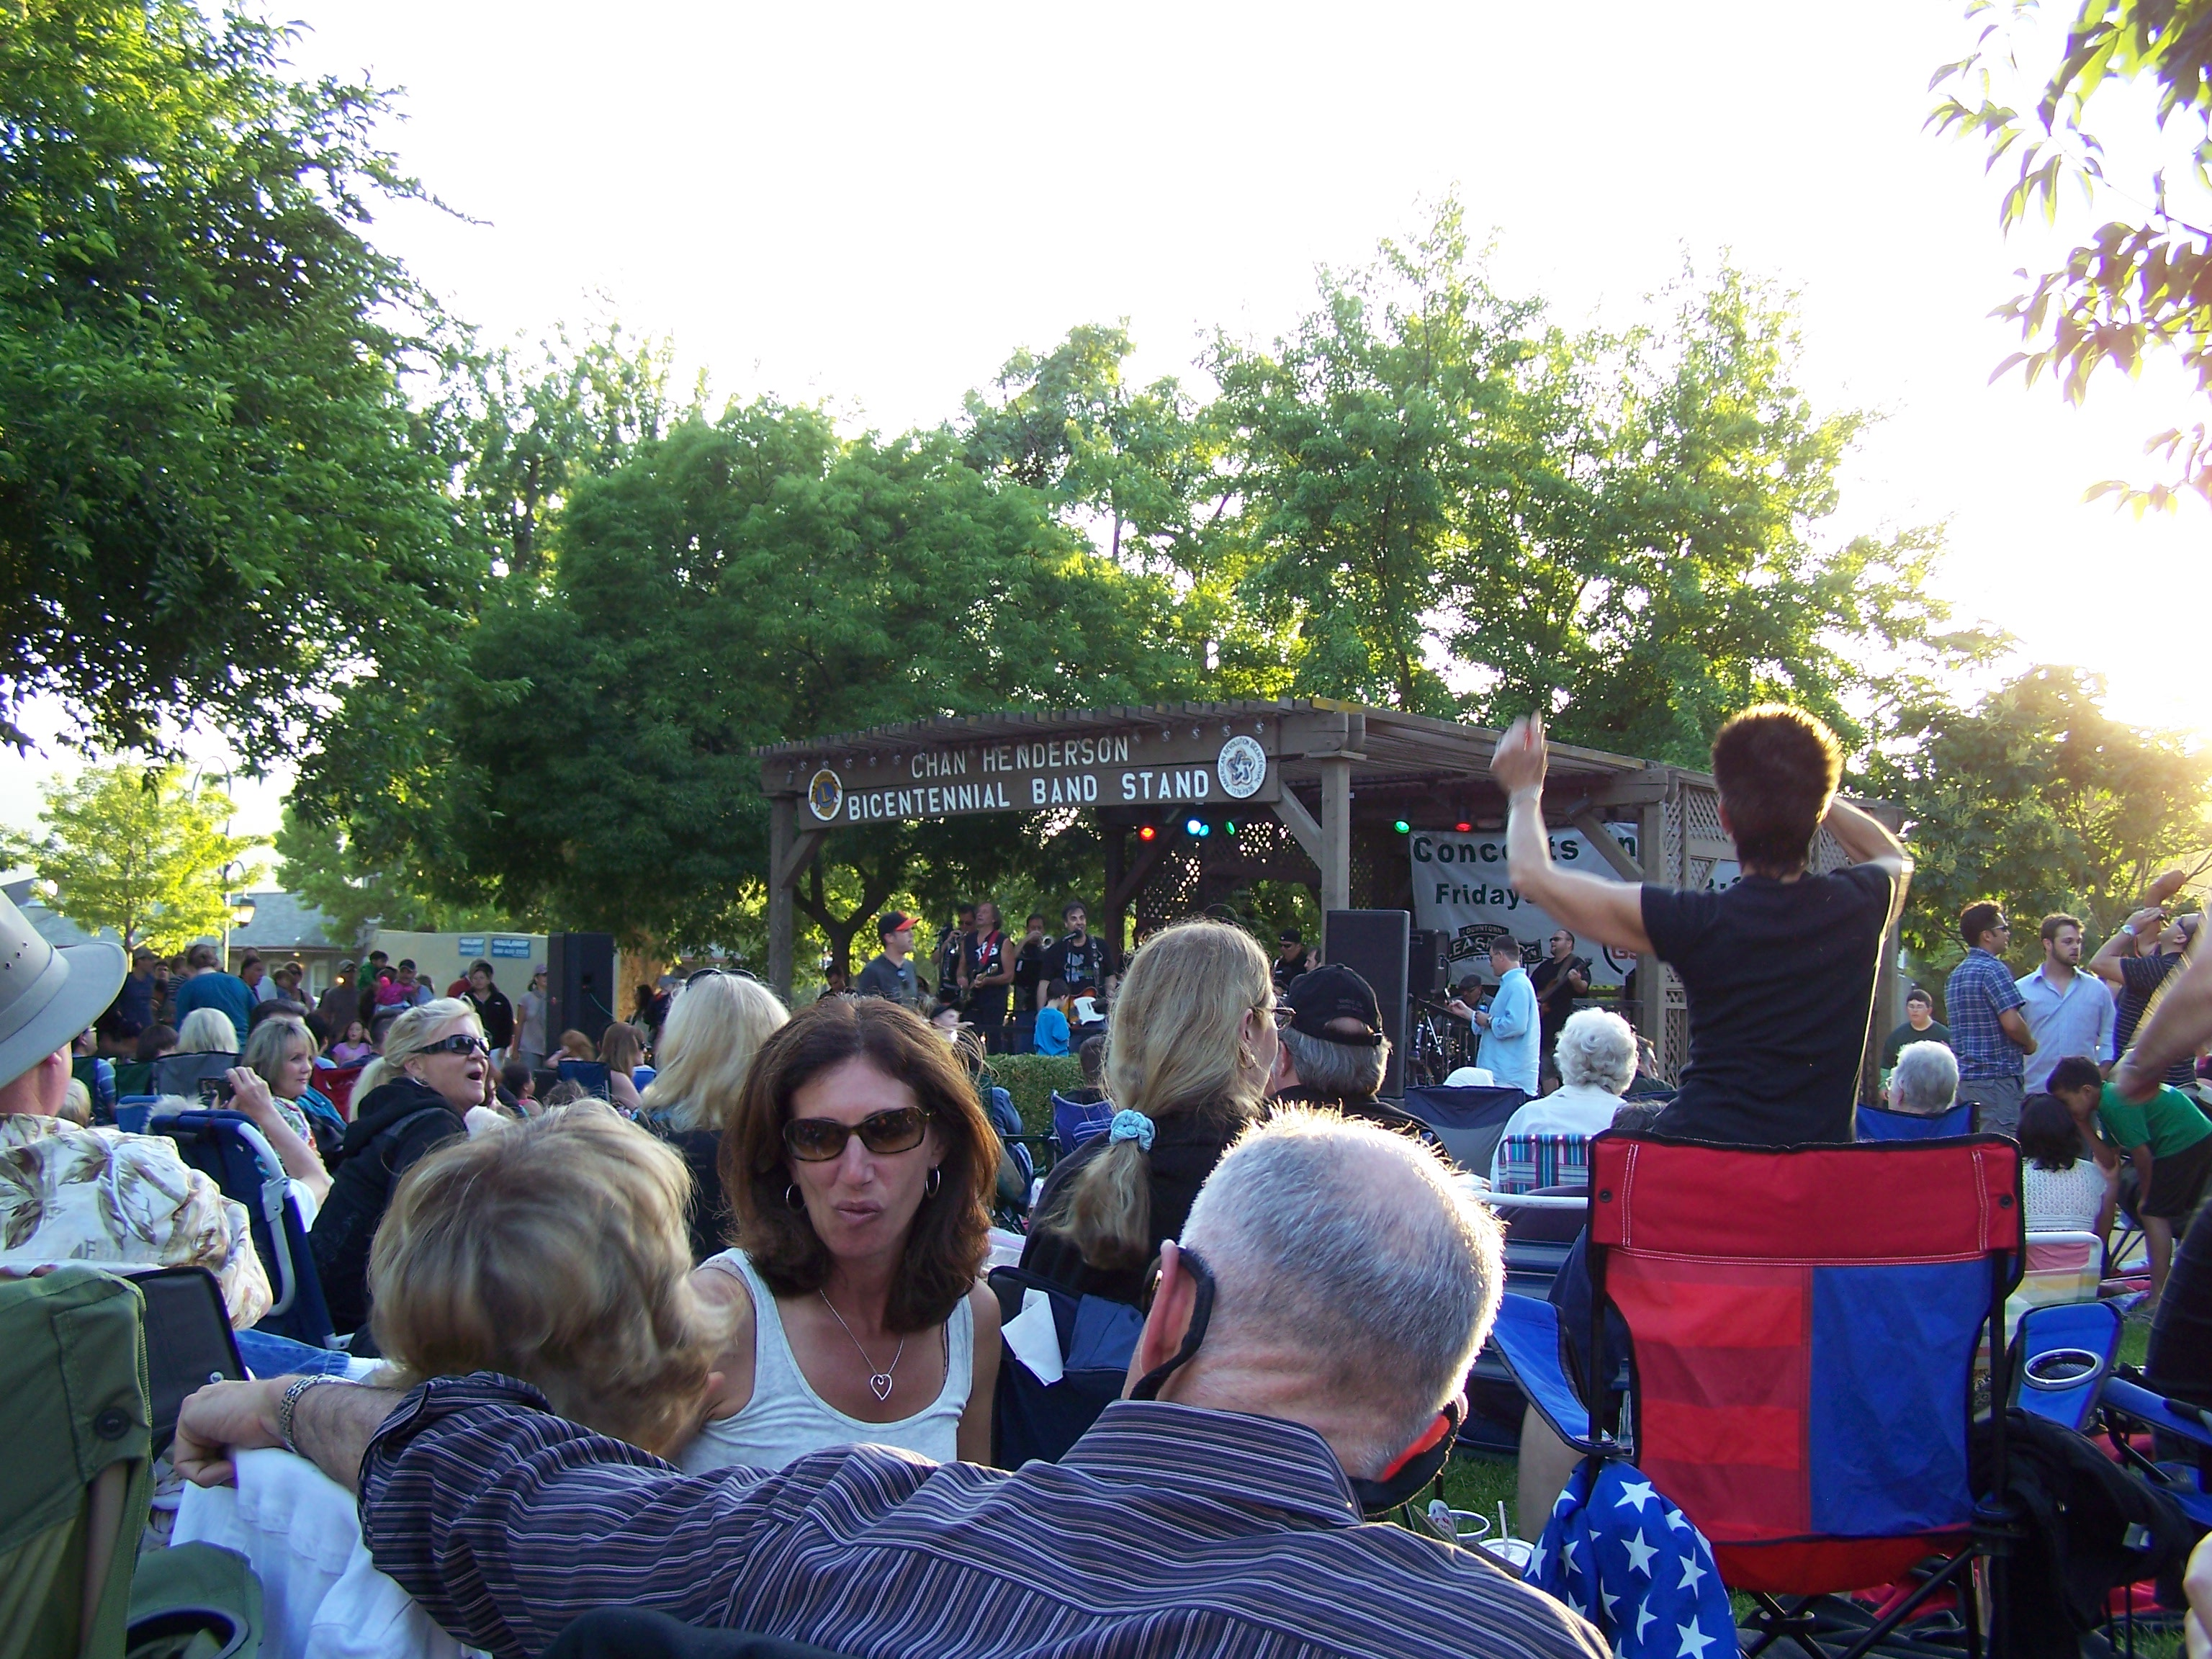 Pleasanton Free Concerts 2014 -Concert in the Park